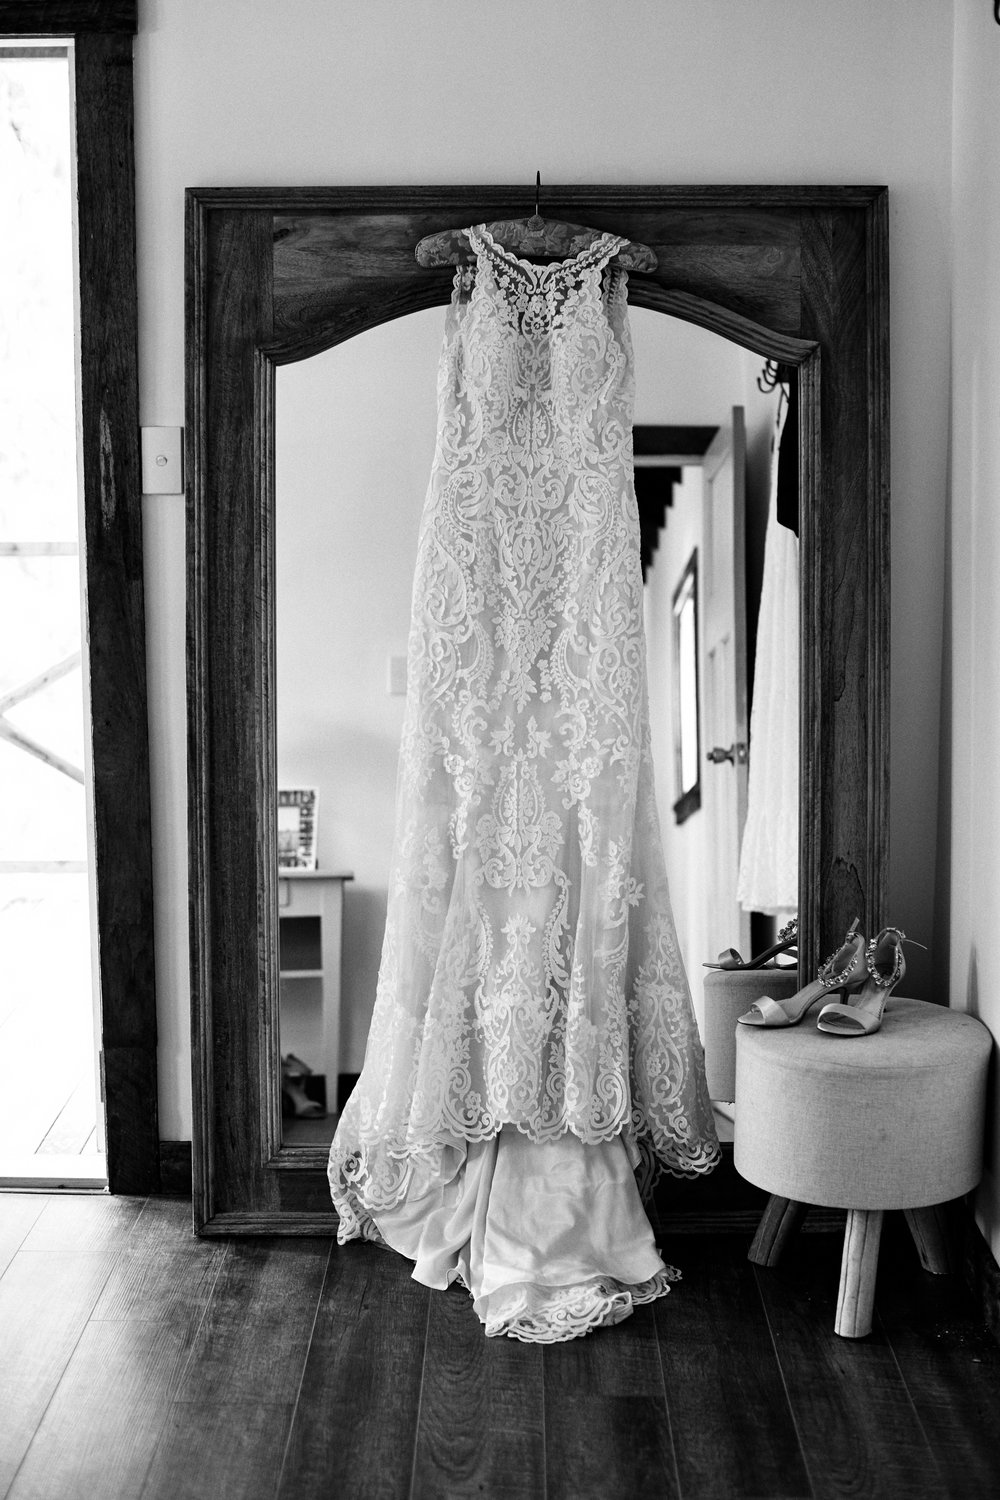 Wedding dress on display at The Stables of Somersby wedding venue in the Central Coast